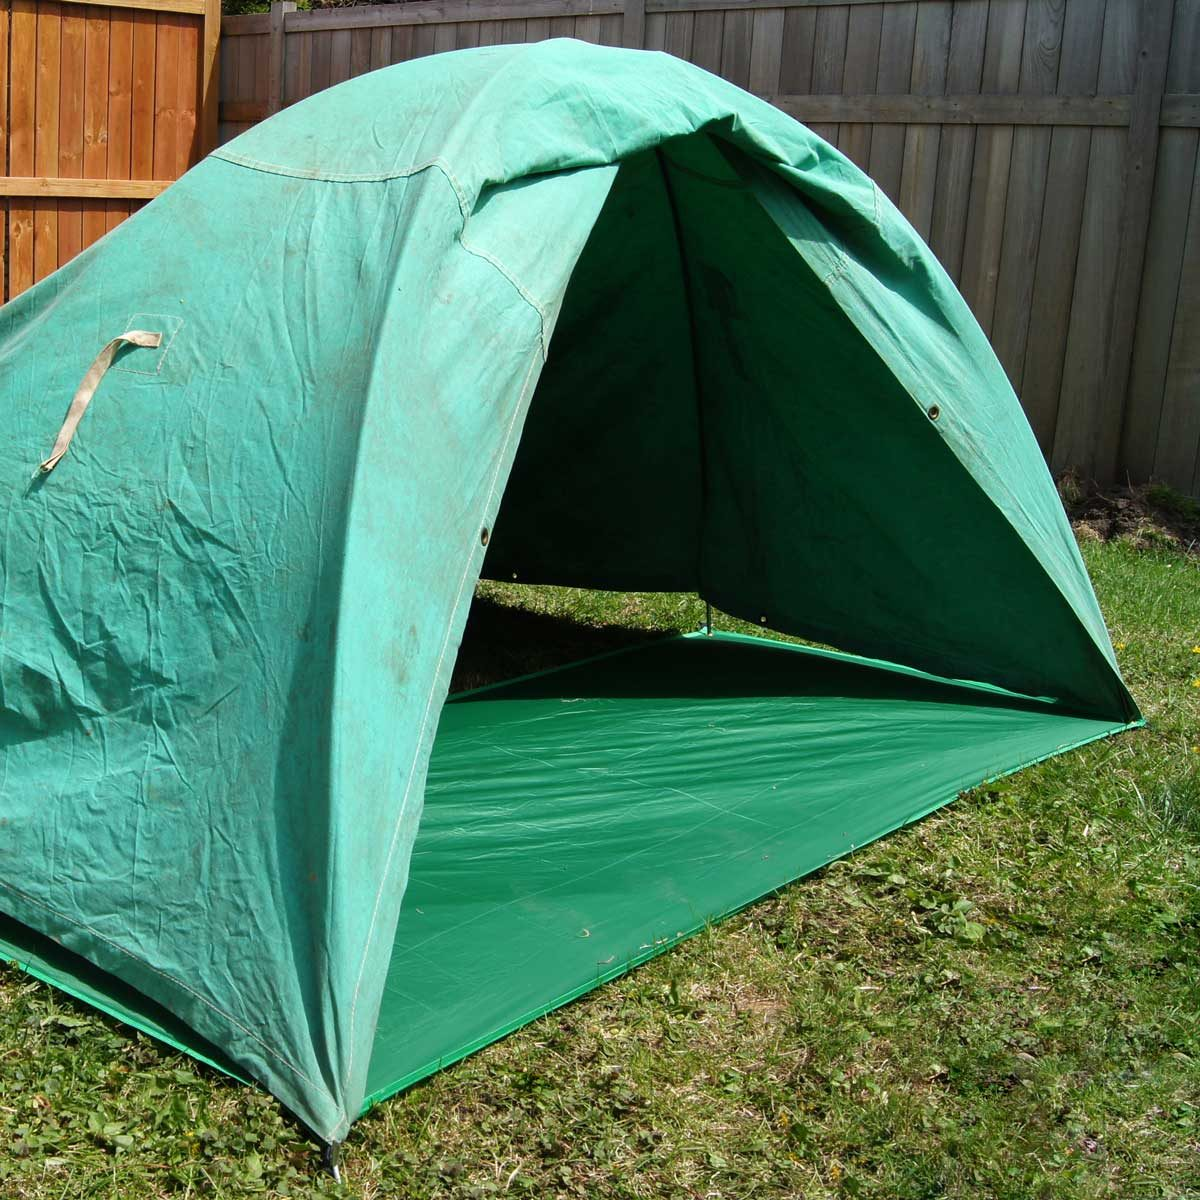 Completed tent pole fort